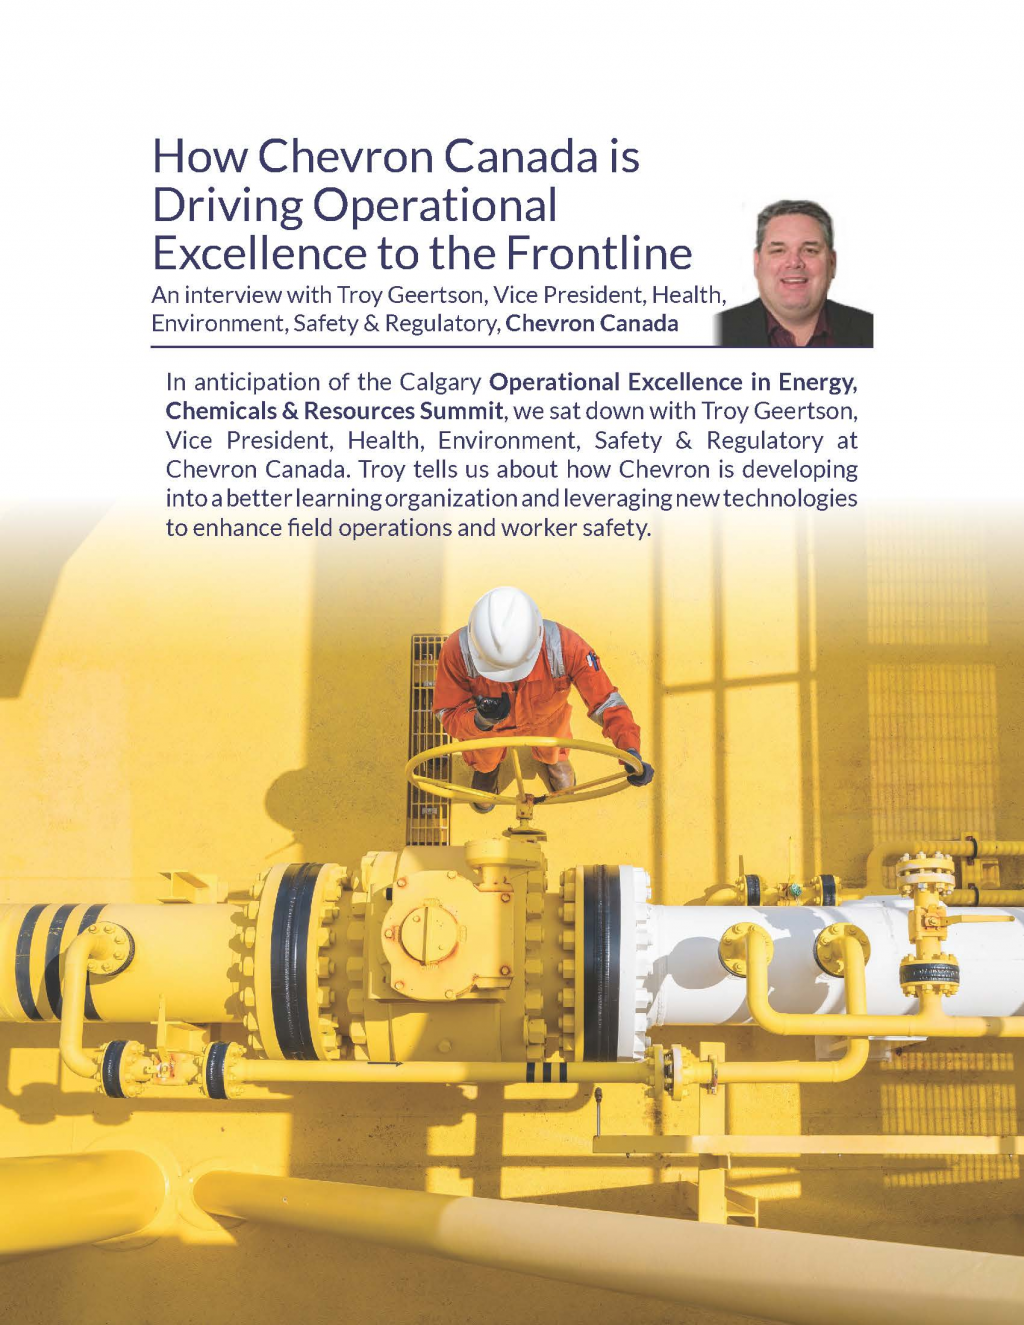 How Chevron Canada is Driving Operational Excellence to the Frontline